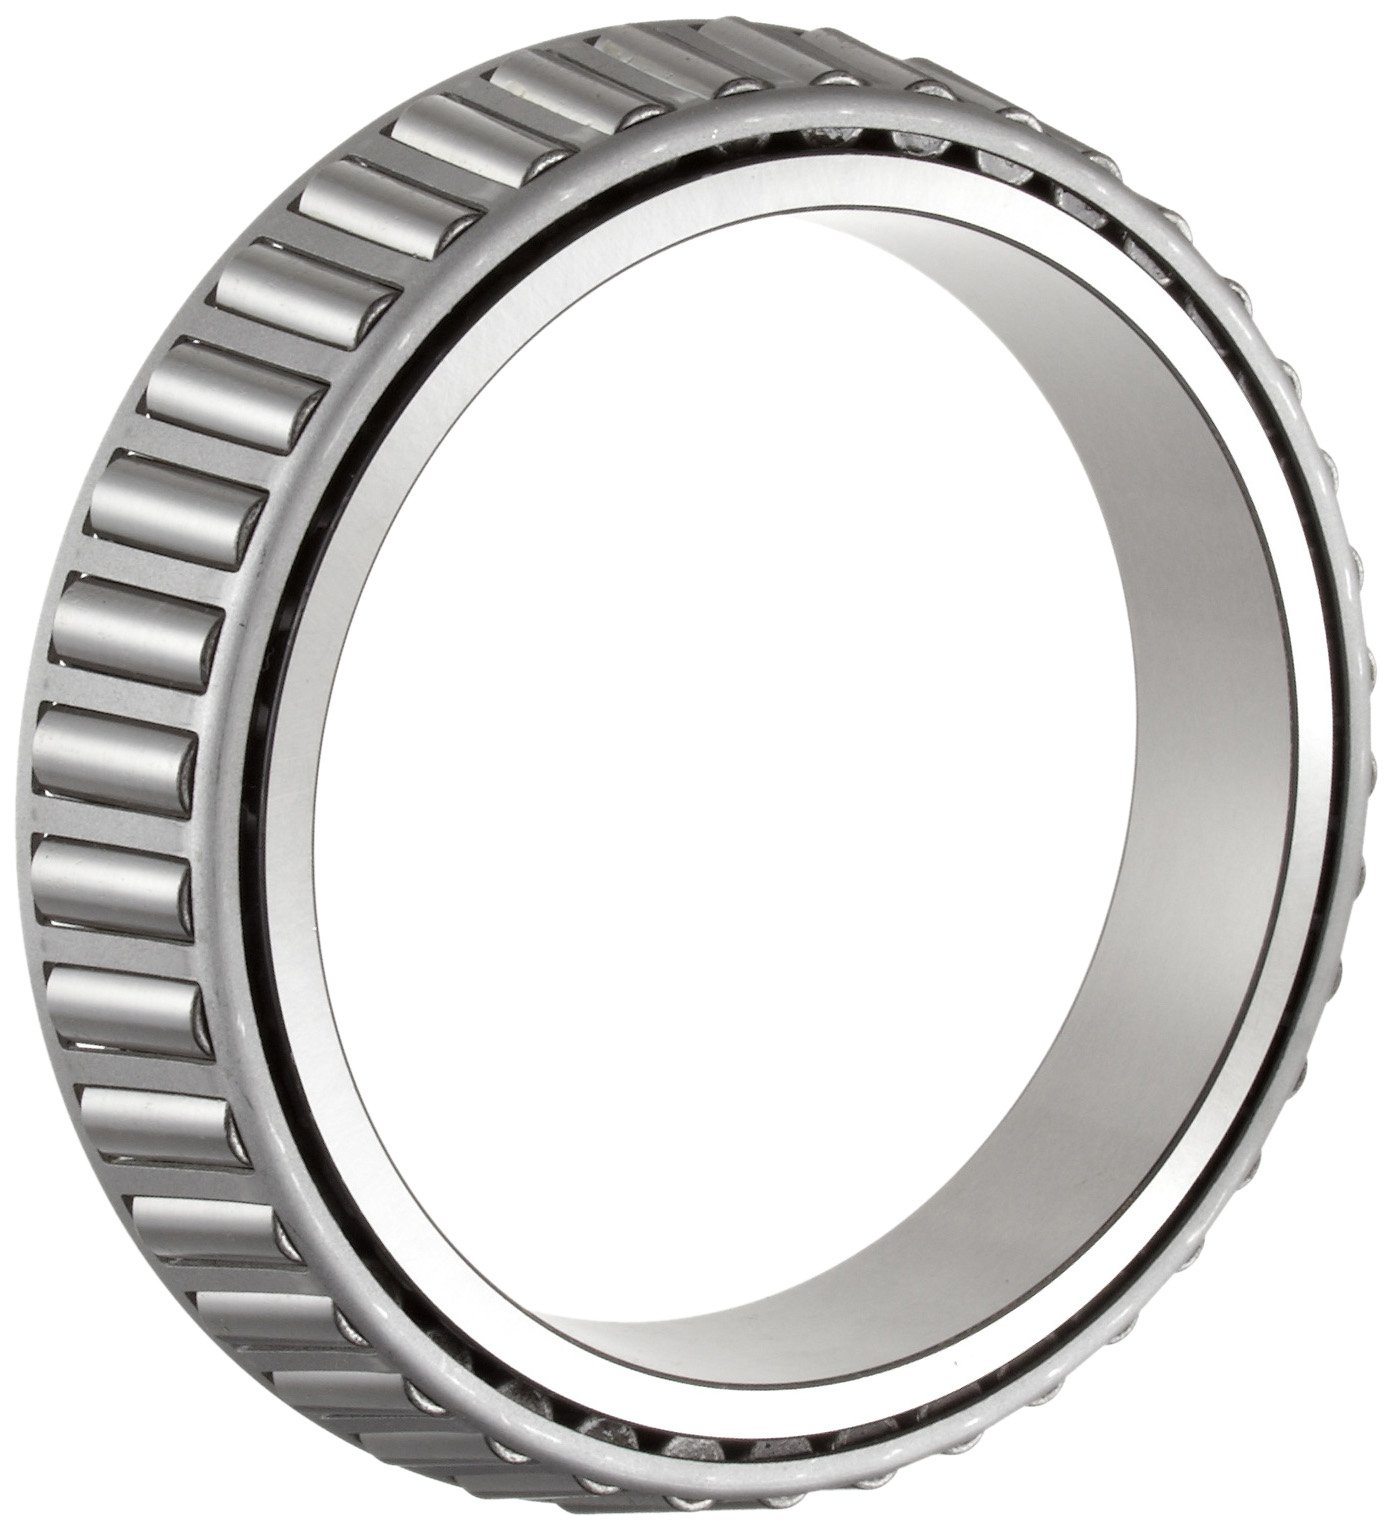 Timken 67885 Tapered Roller Bearing, Single Cone, Standard Tolerance, Straight Bore, Steel, Inch, 7.5000'' ID, 1.8440'' Width